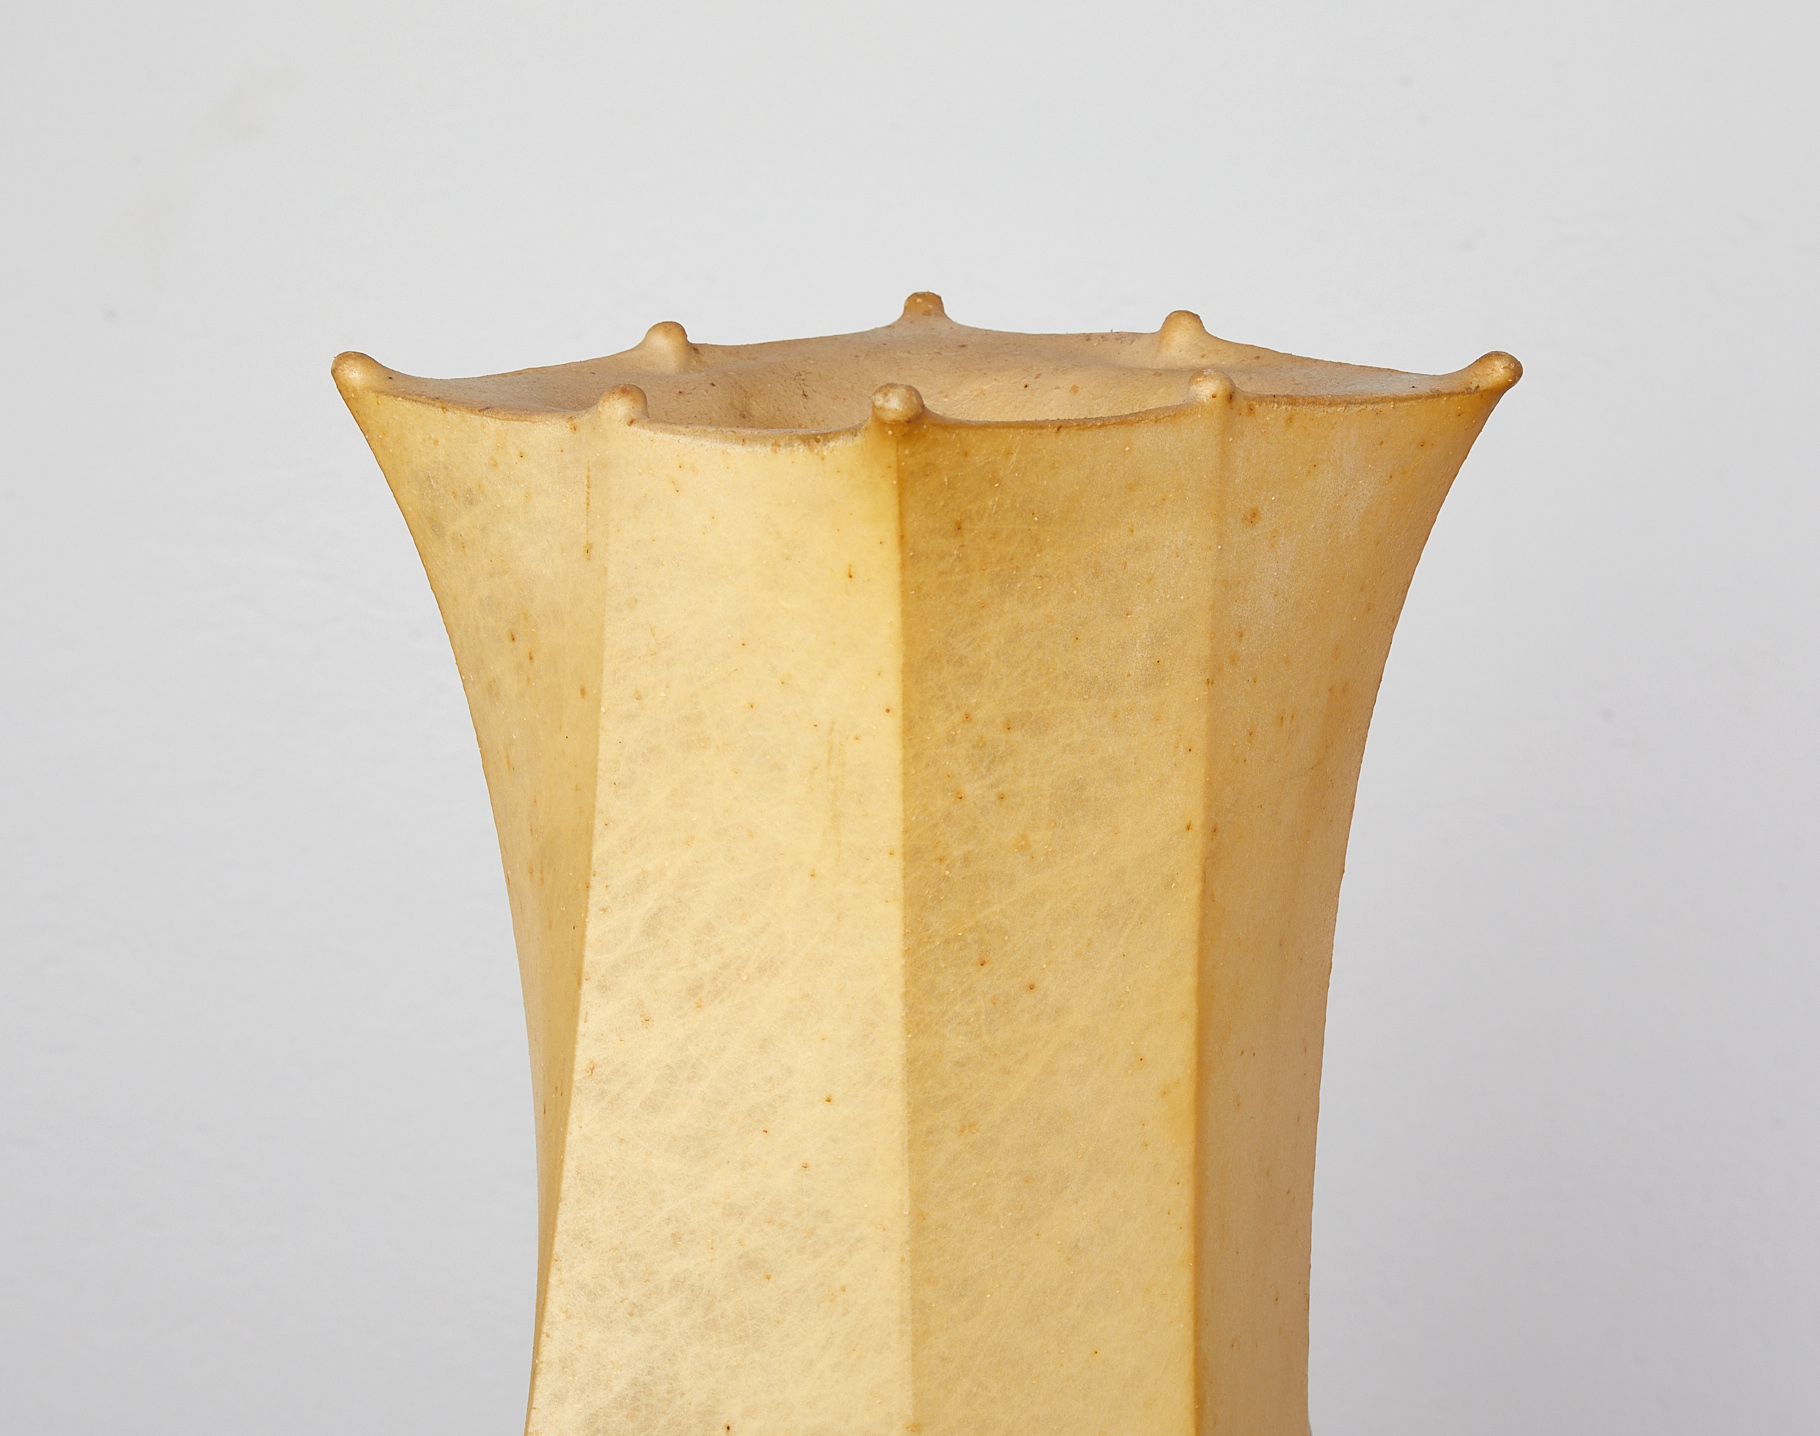 fantasma-piccolo-resin-cocoon-floor-lamp-by-tobia-scarpa-for-flos-1963-image-06